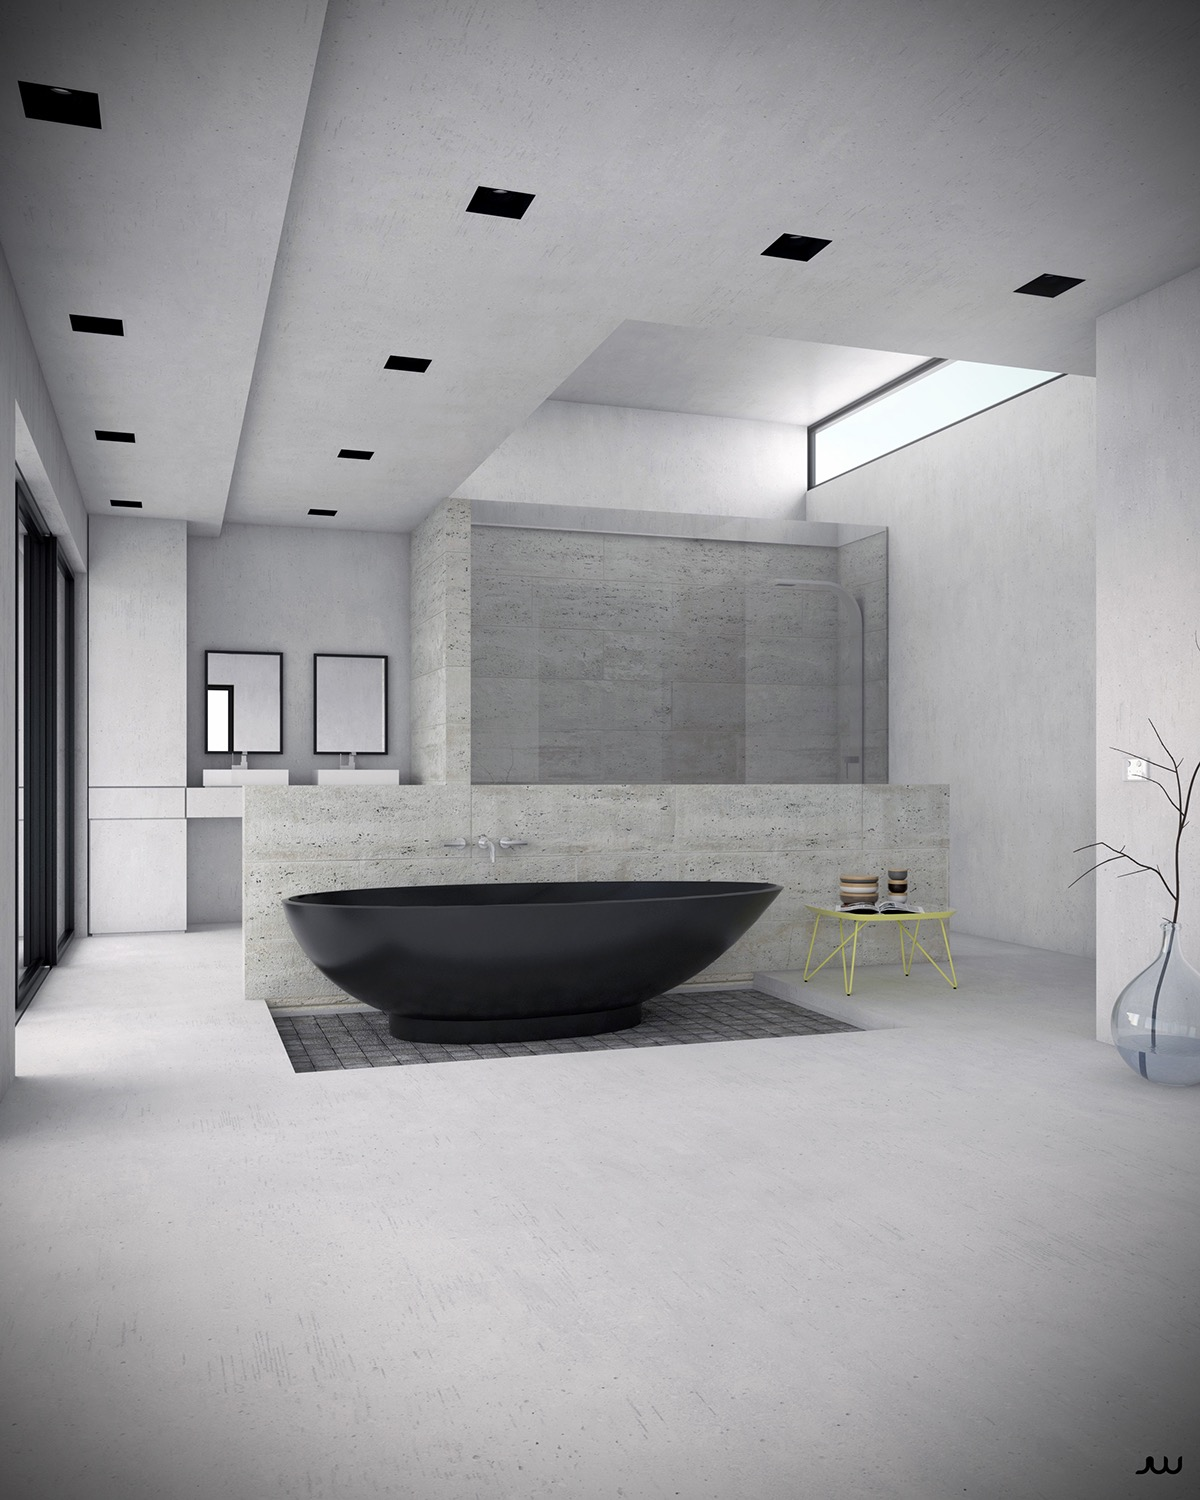 The smooth satin finish makes this black freestanding bathtub a delight to behold. The slightly recessed tile underneath is an especially inspiring touch.